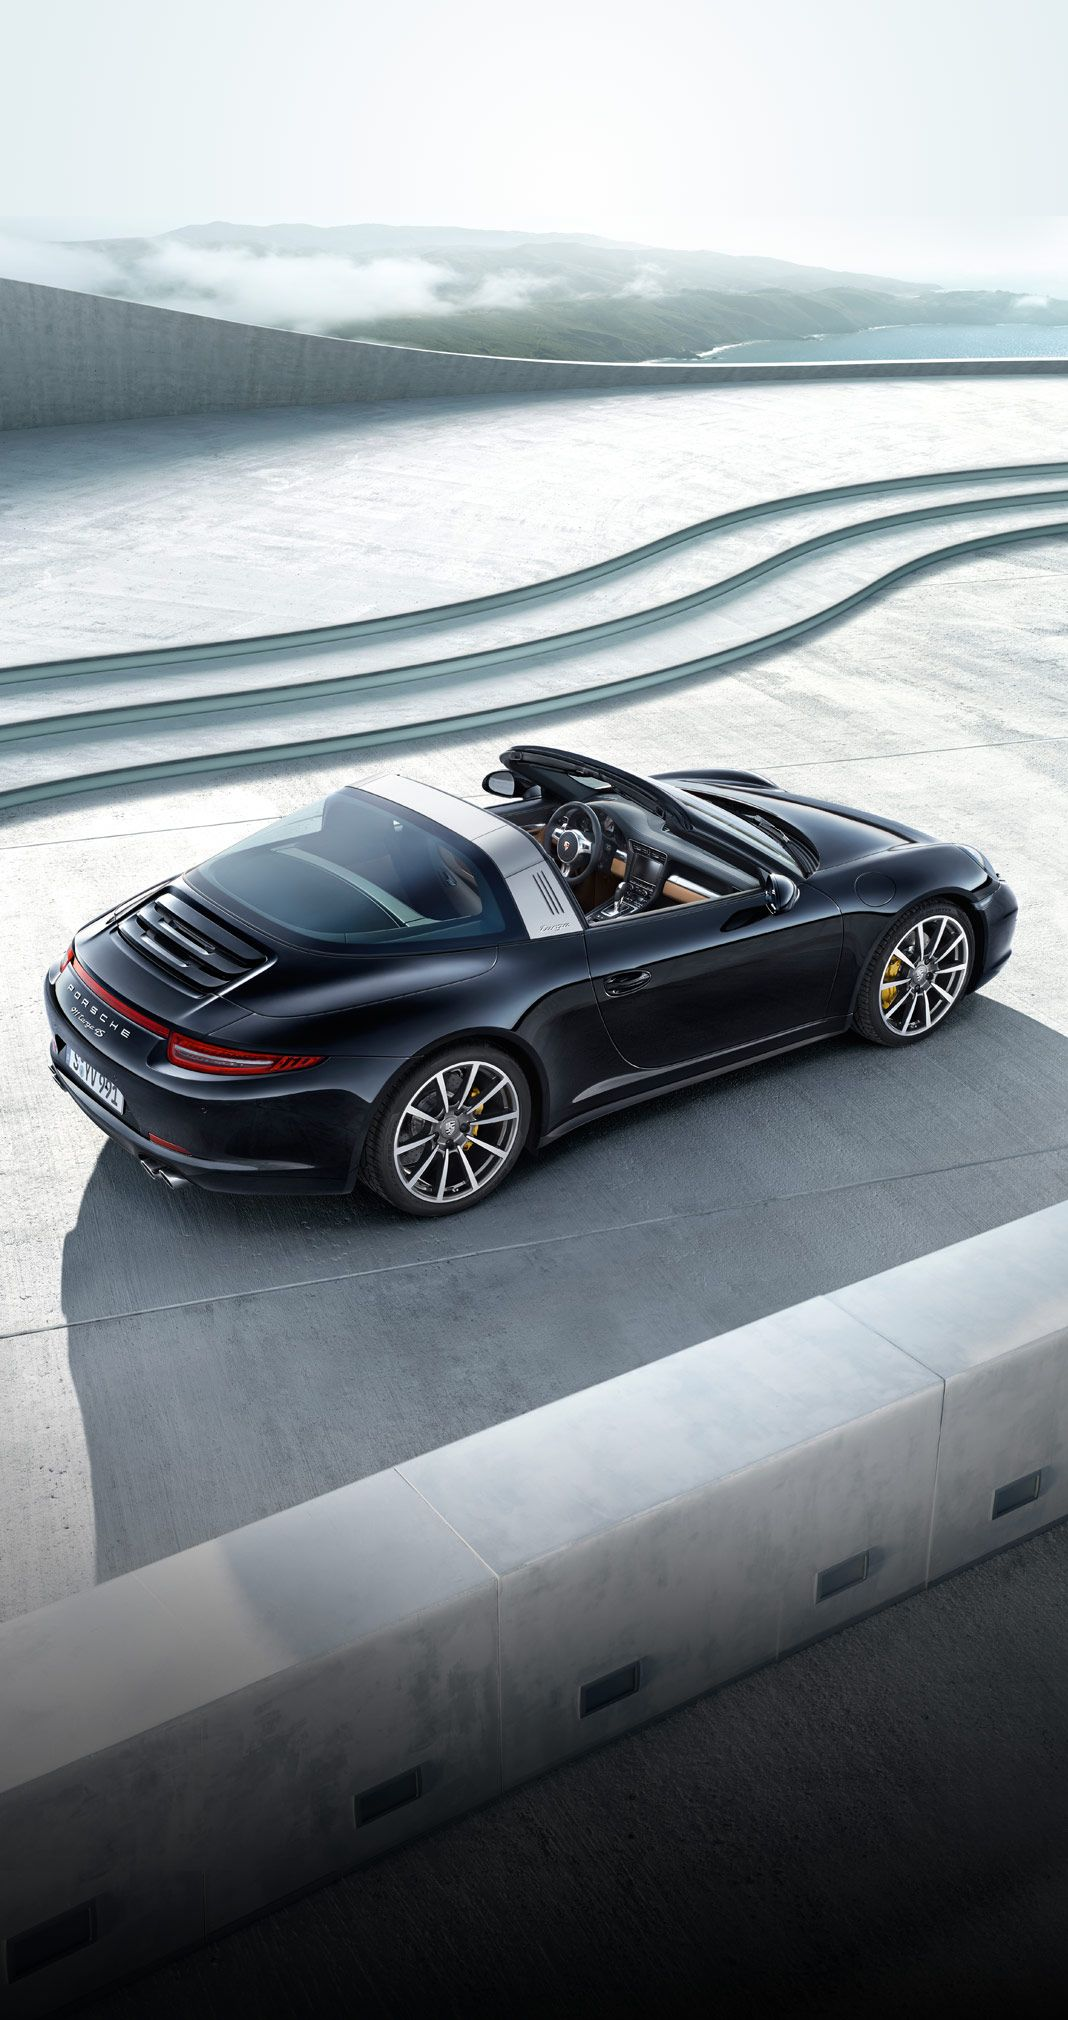 The New Roof System Of The 911targa 4 Models Is Based On A Complex And Extremely Robust Technical Solution That Allows The Roof To Be Opened Bil Fordon Bilar